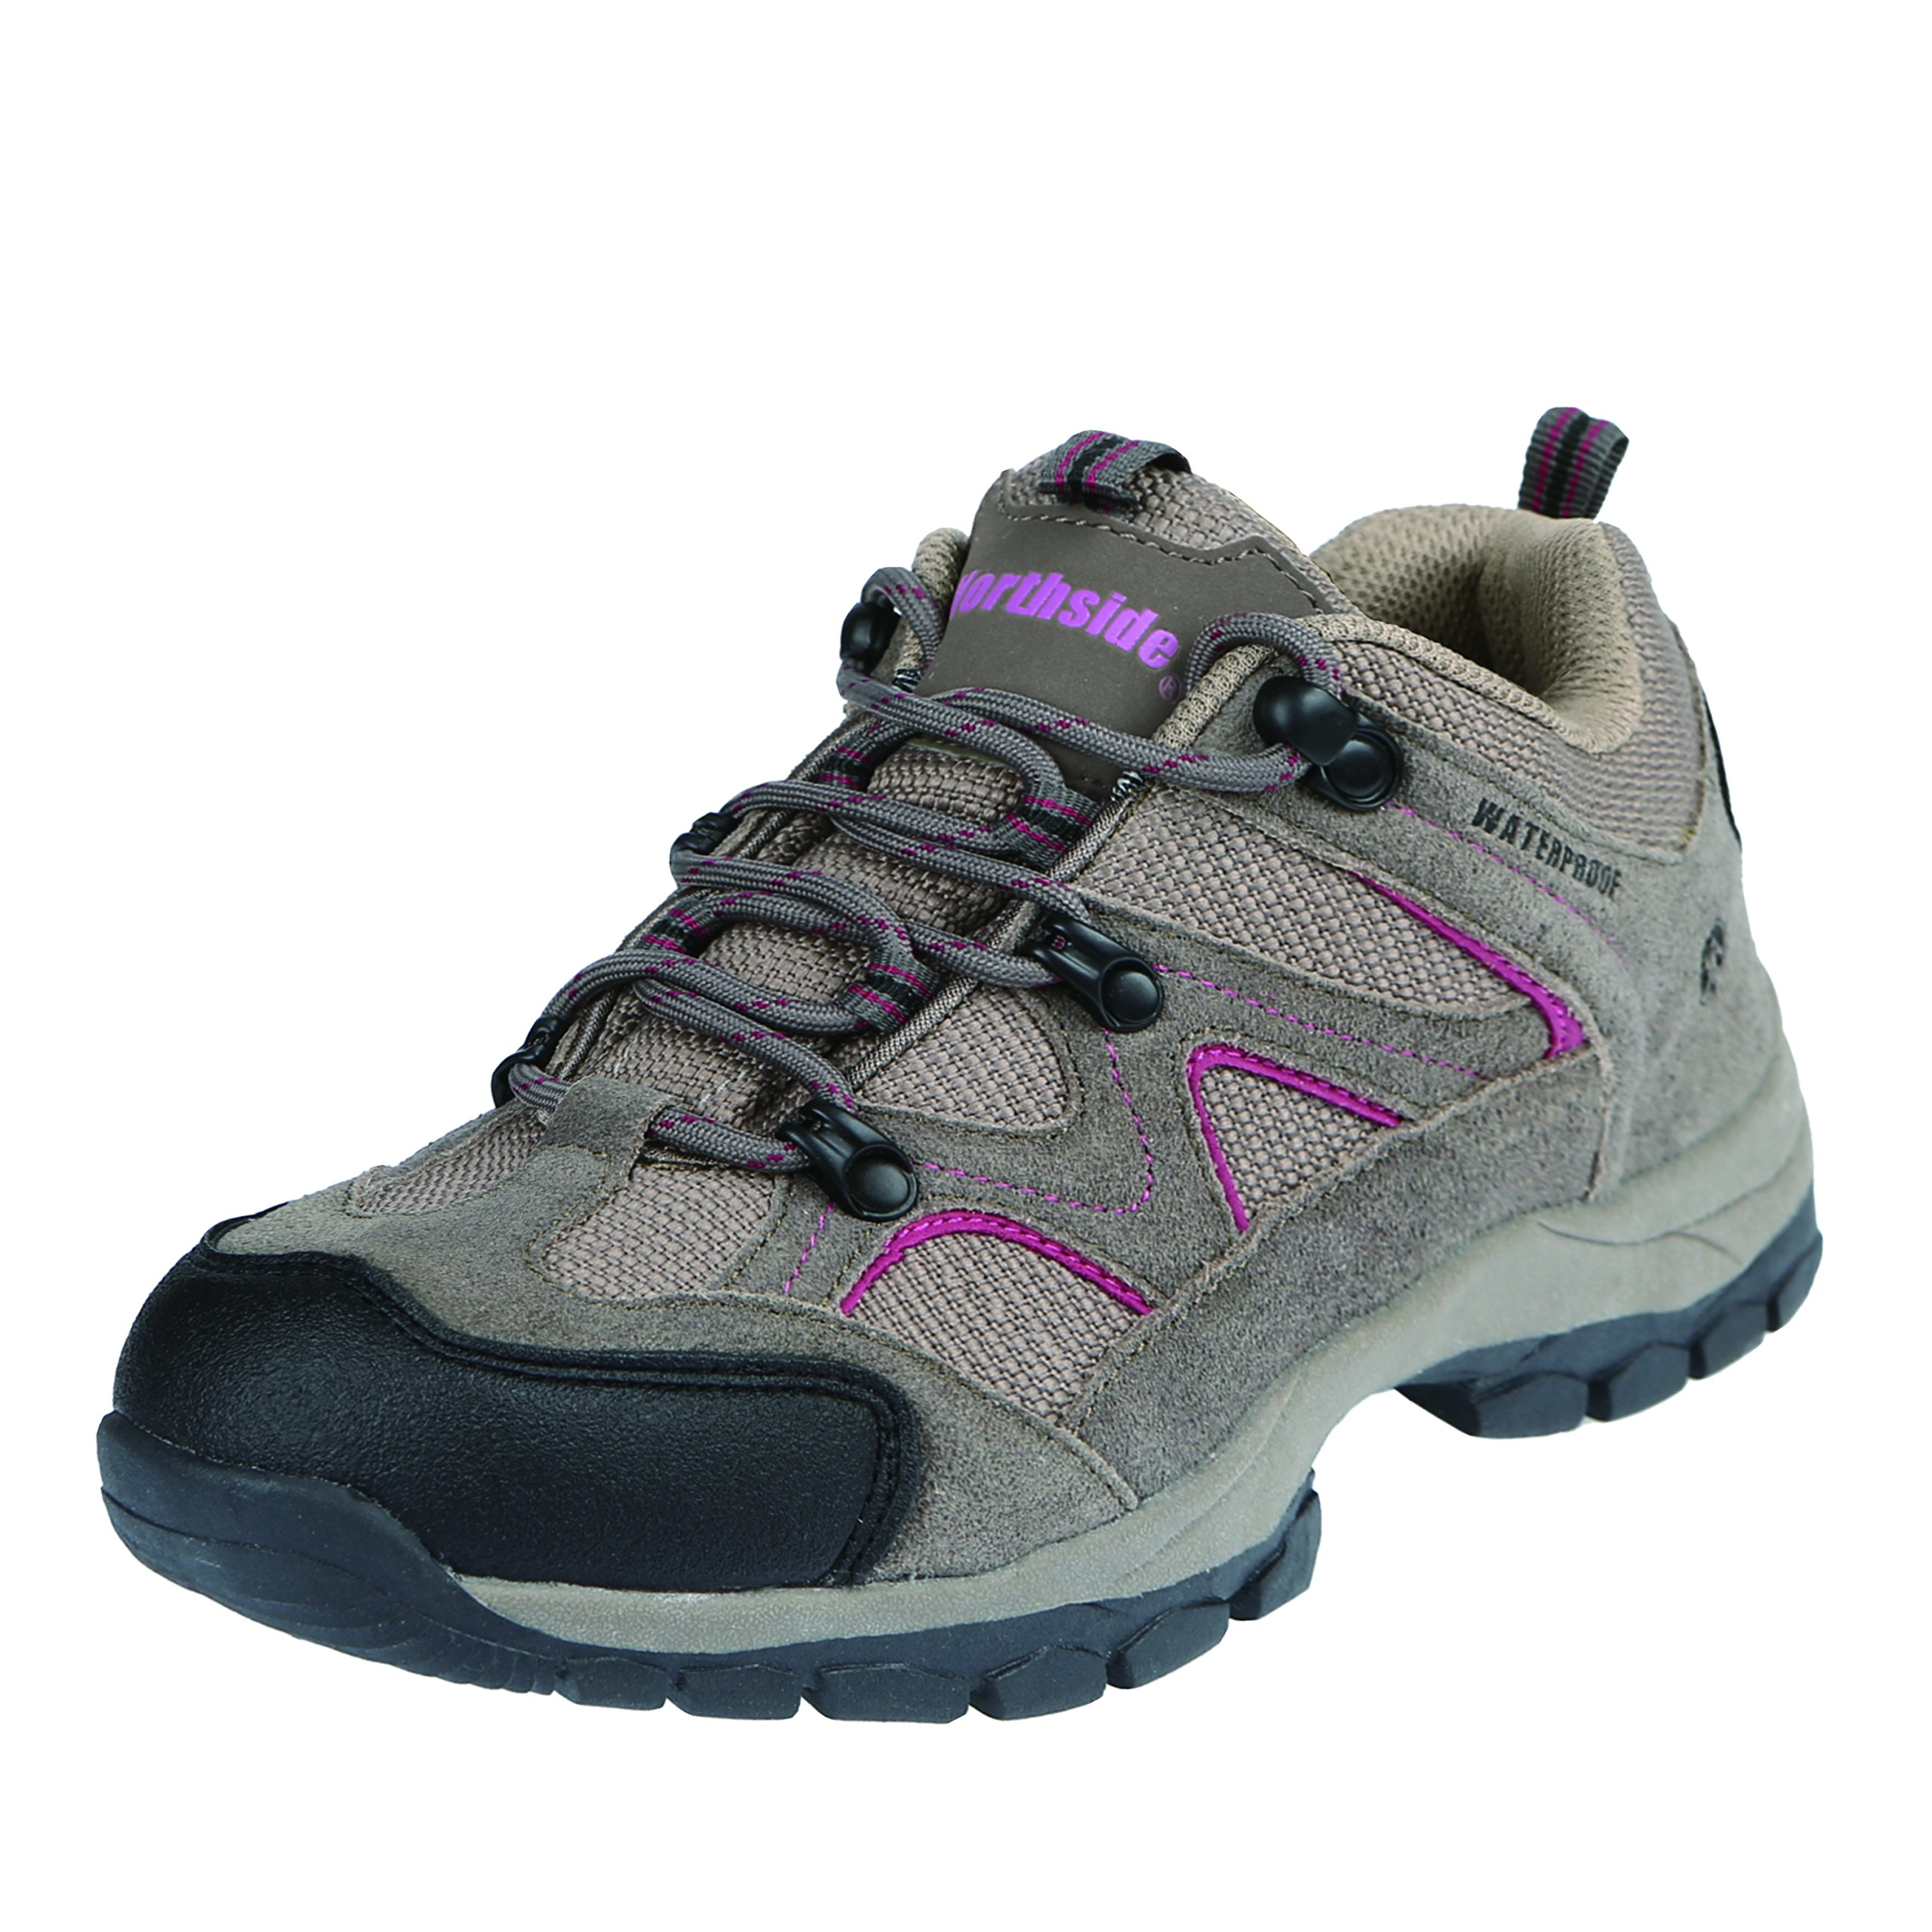 Northside Women's Snohomish Low Hiking Shoe, Stone/Berry, 9 M US